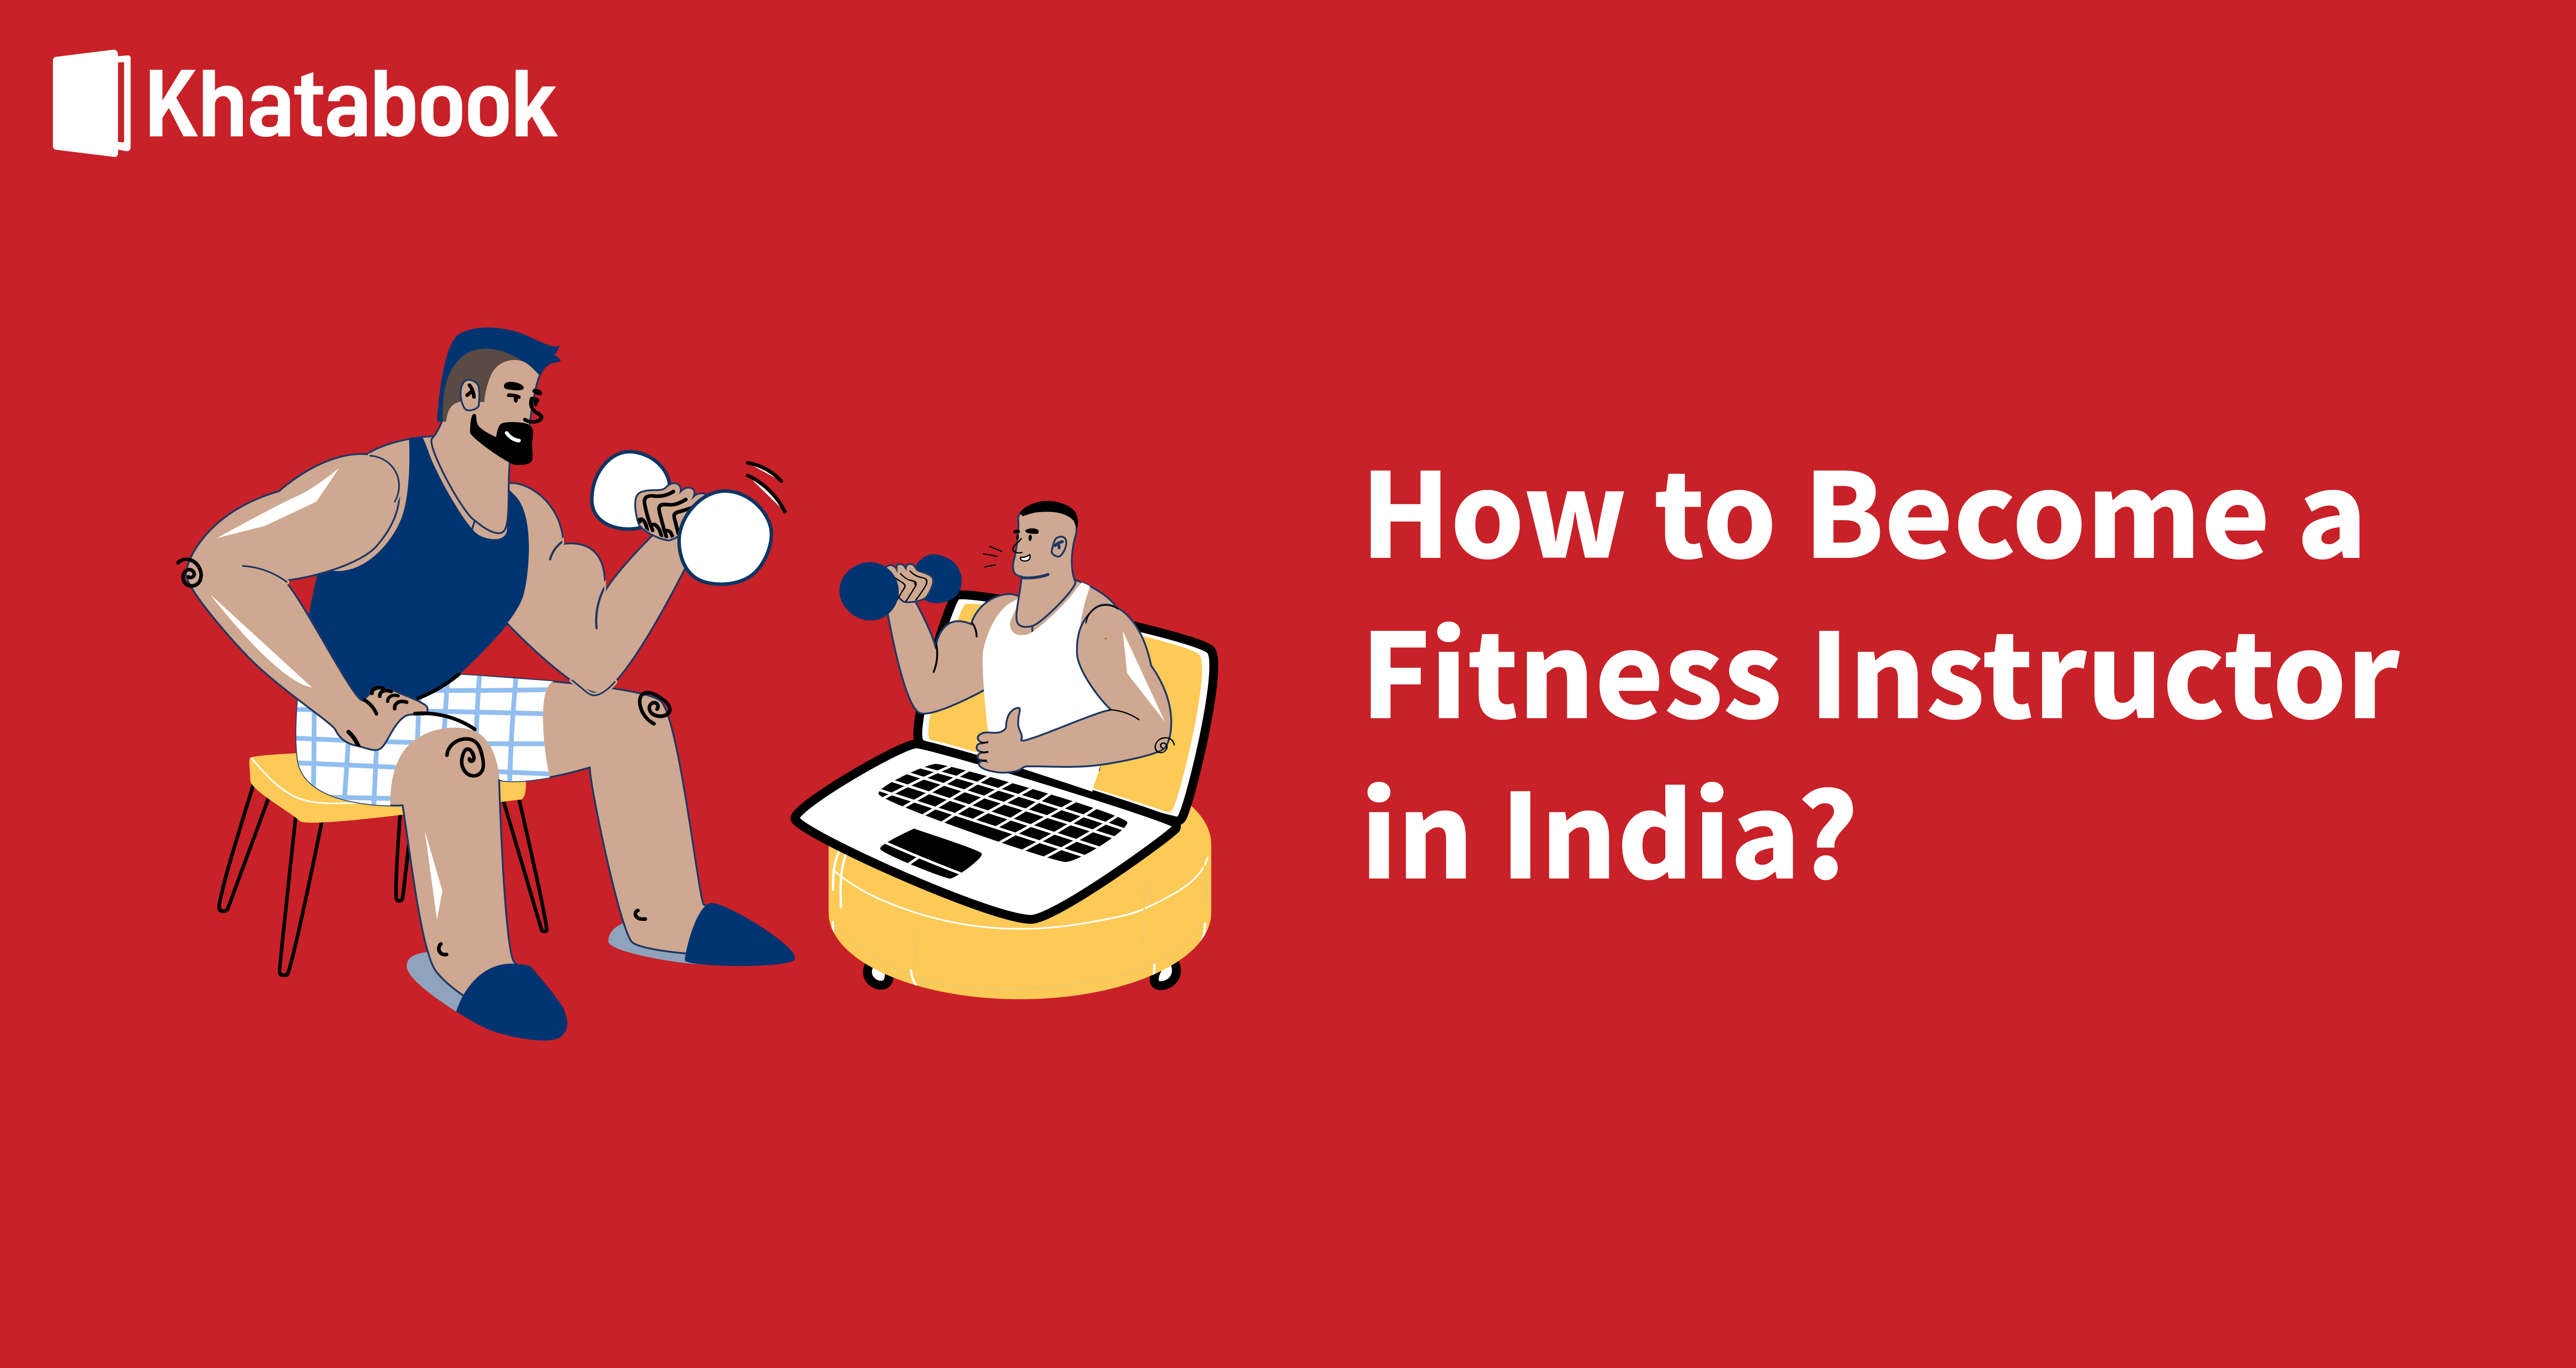 How To Become a Fitness Instructor in India